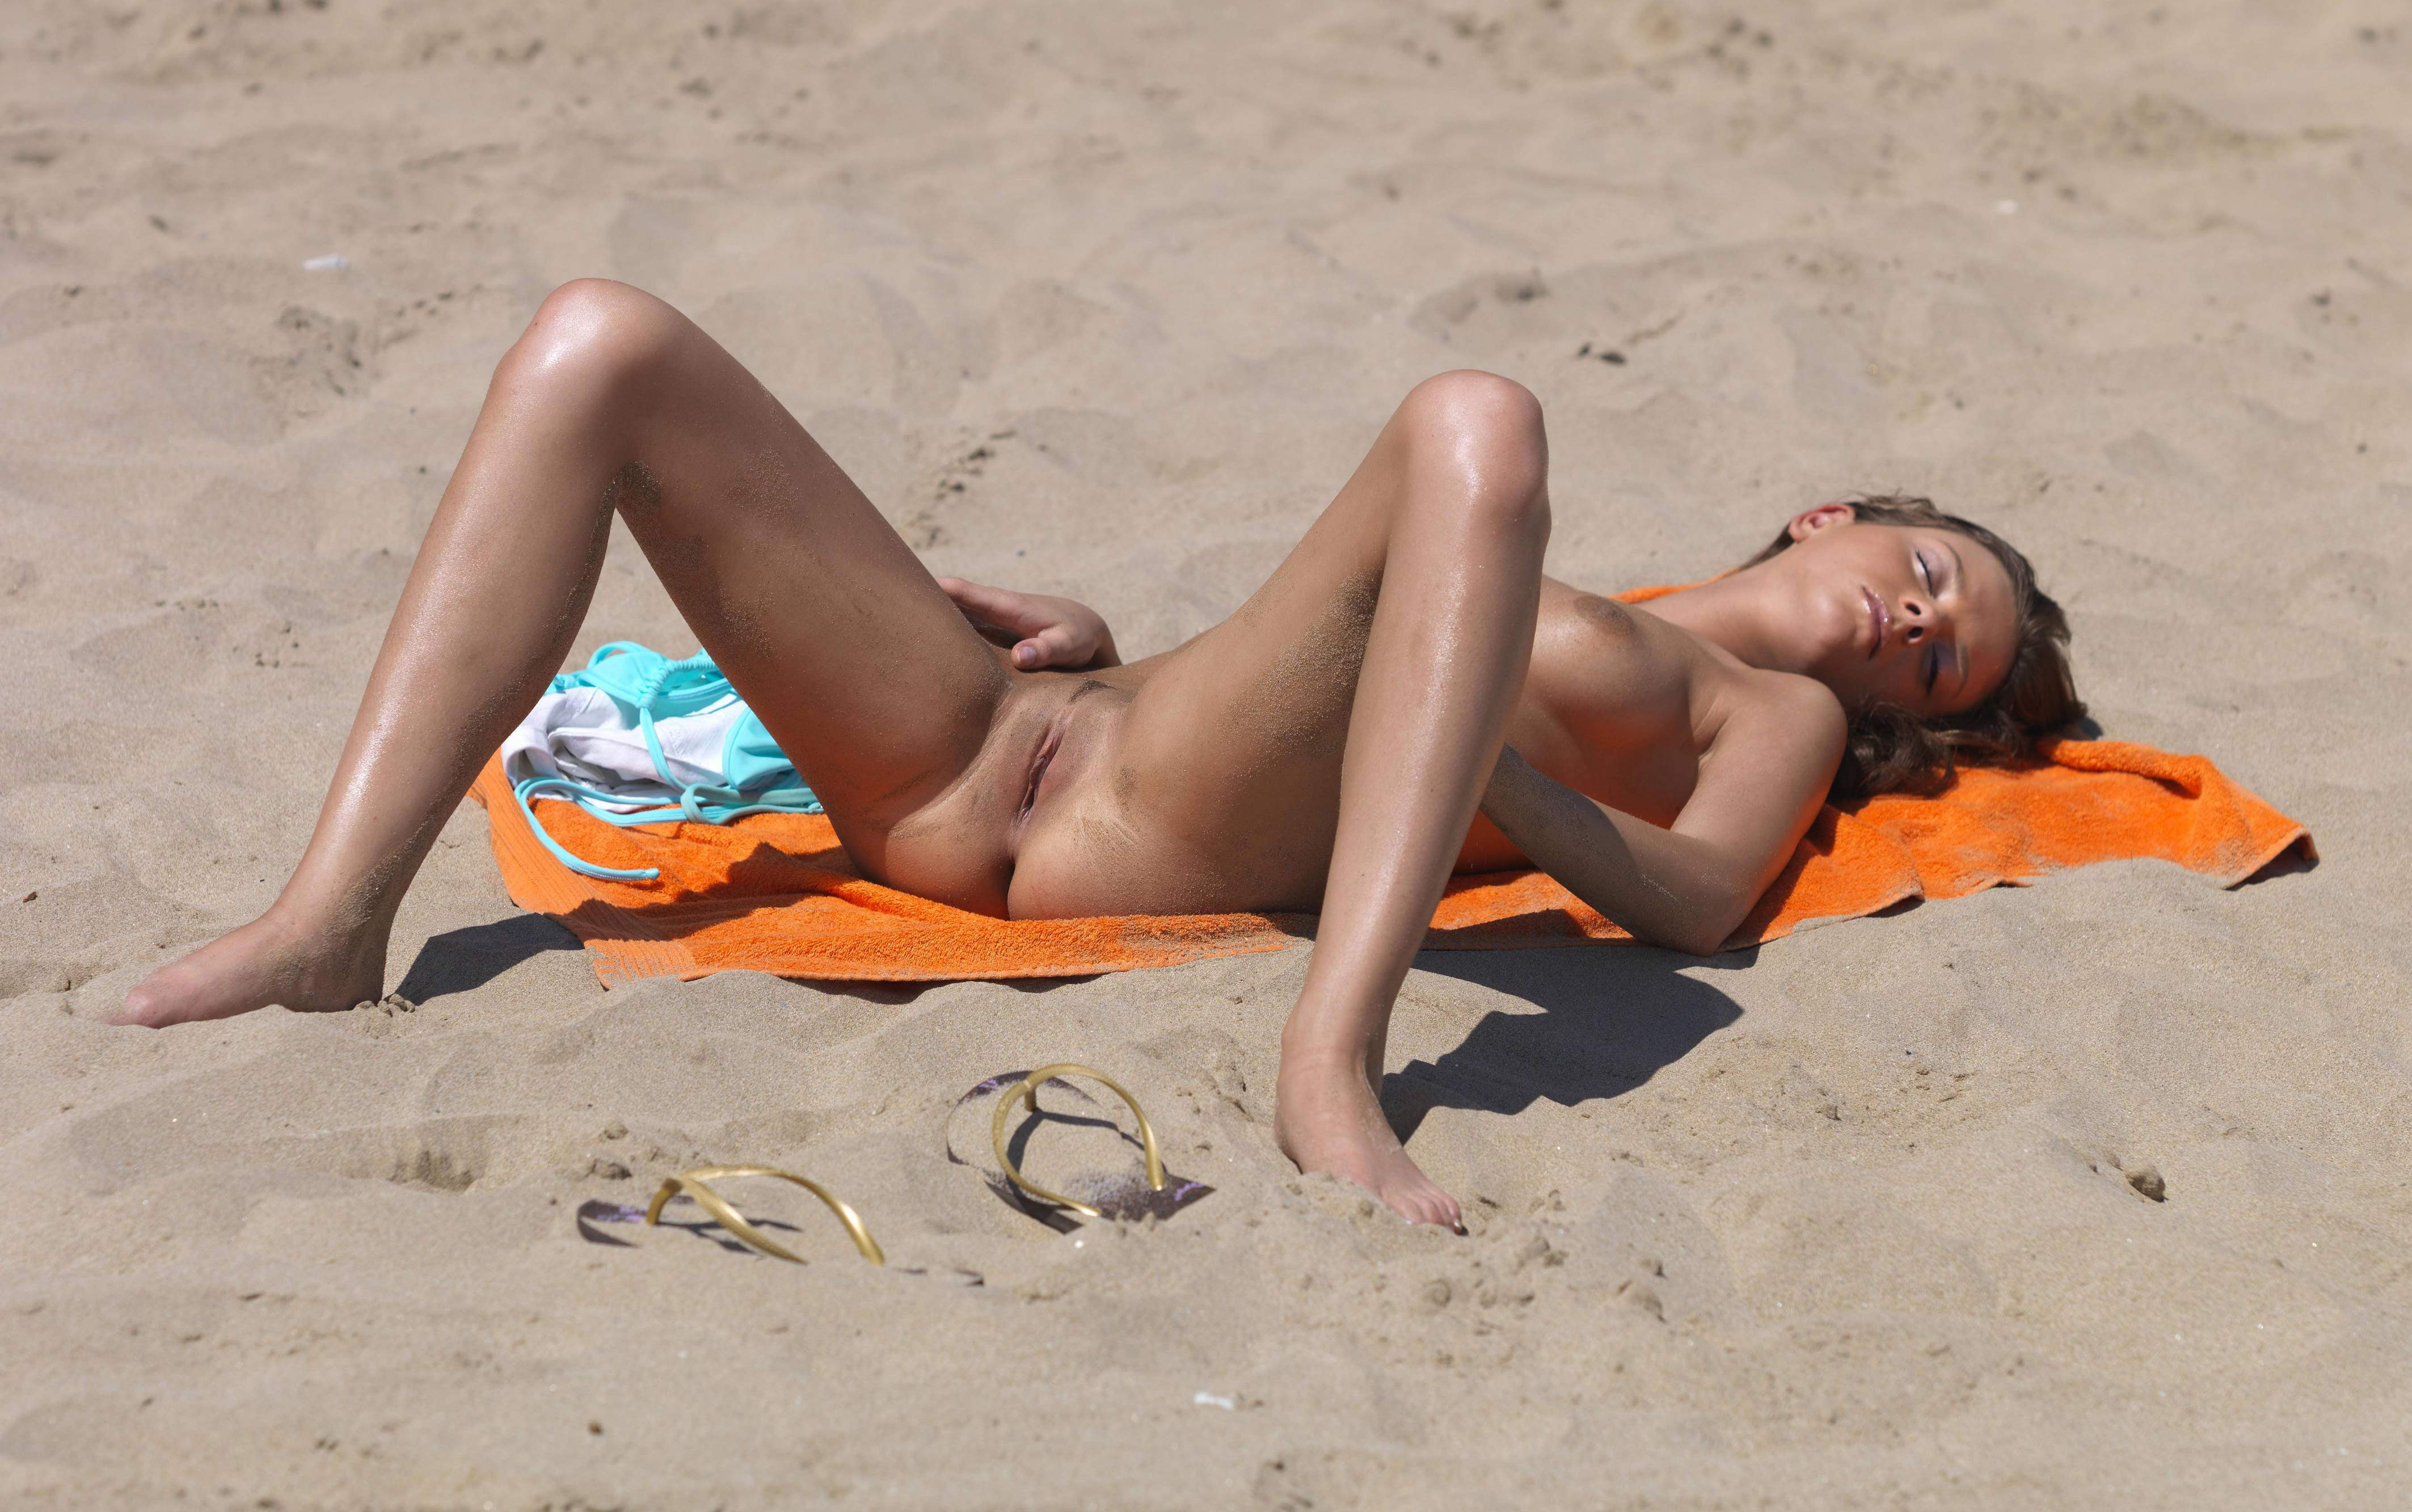 Women in topless bikinis at beach pictures